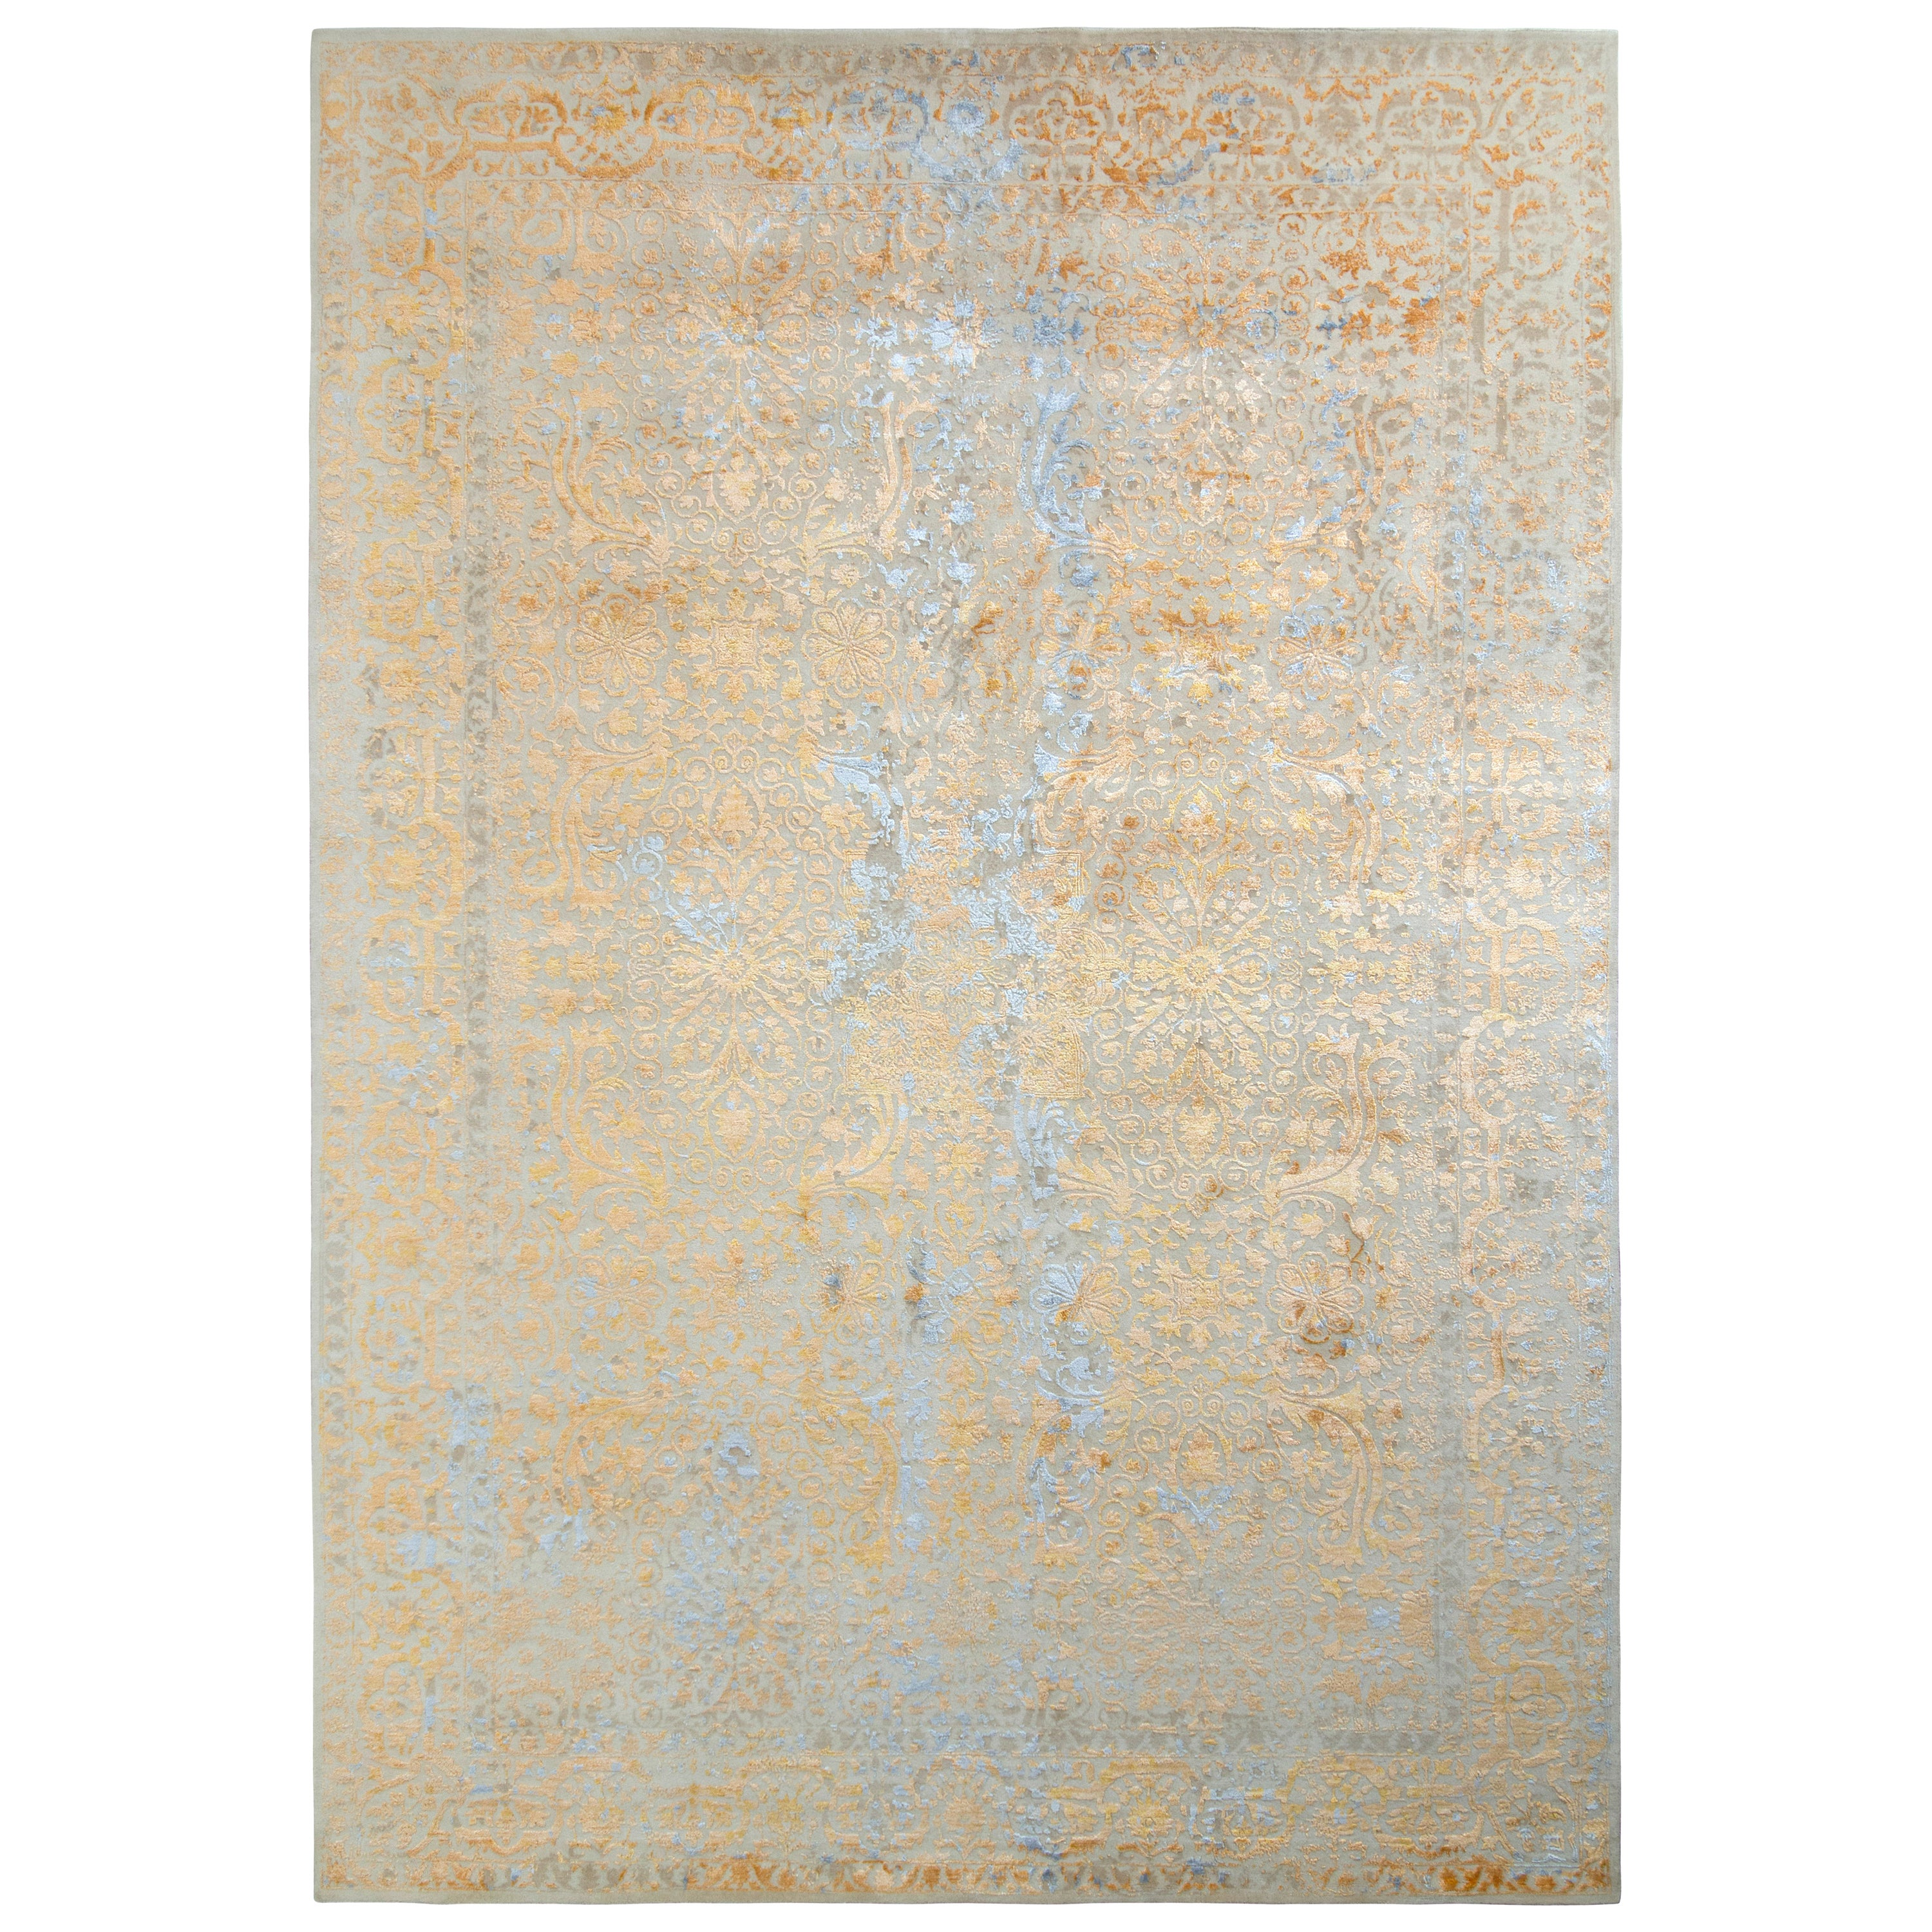 Rug & Kilim's Hand Knotted Classic Style Rug in Beige Orange Floral Pattern